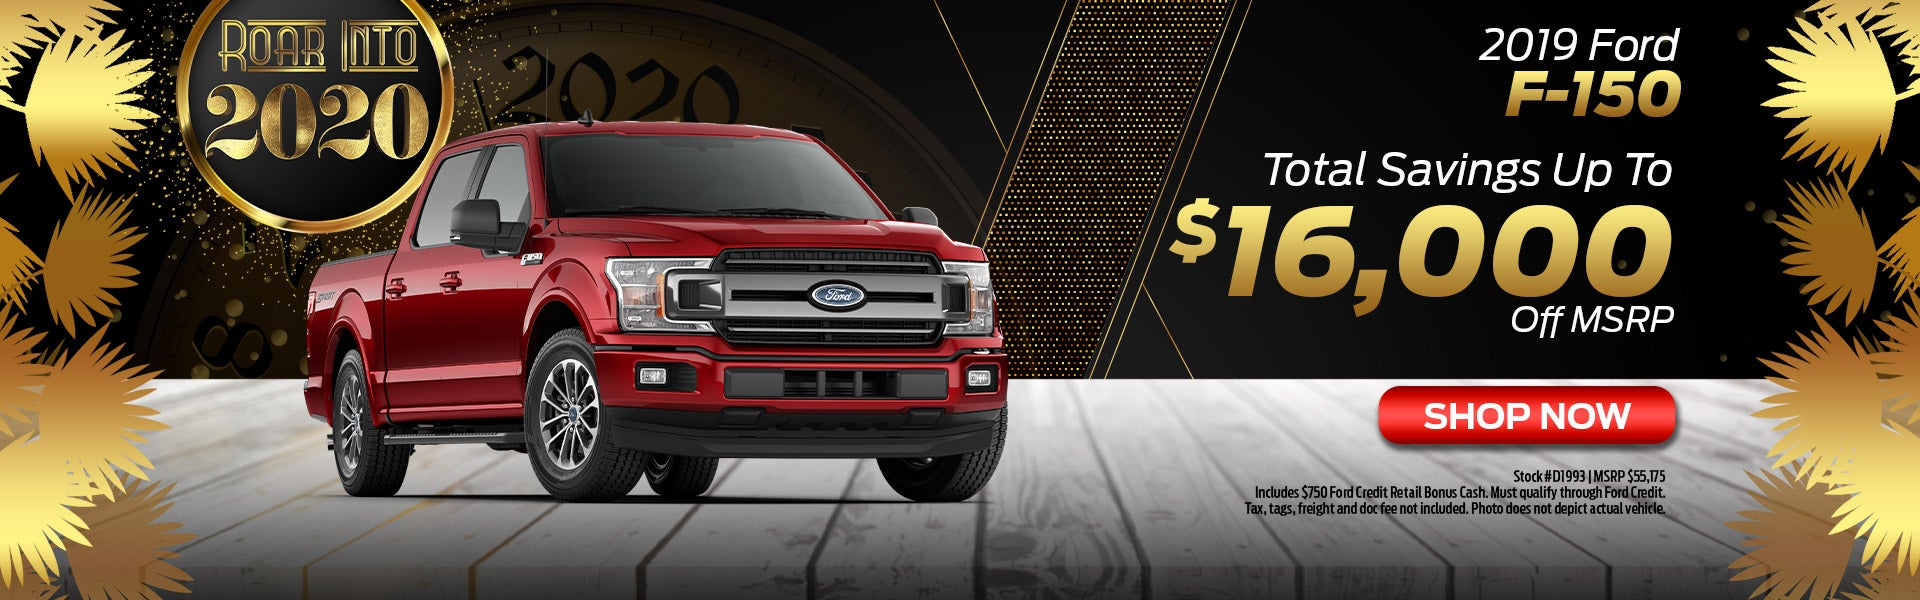 My Ford Credit >> Local Ford Dealership Palmetto Ford New Ford Cars And Trucks